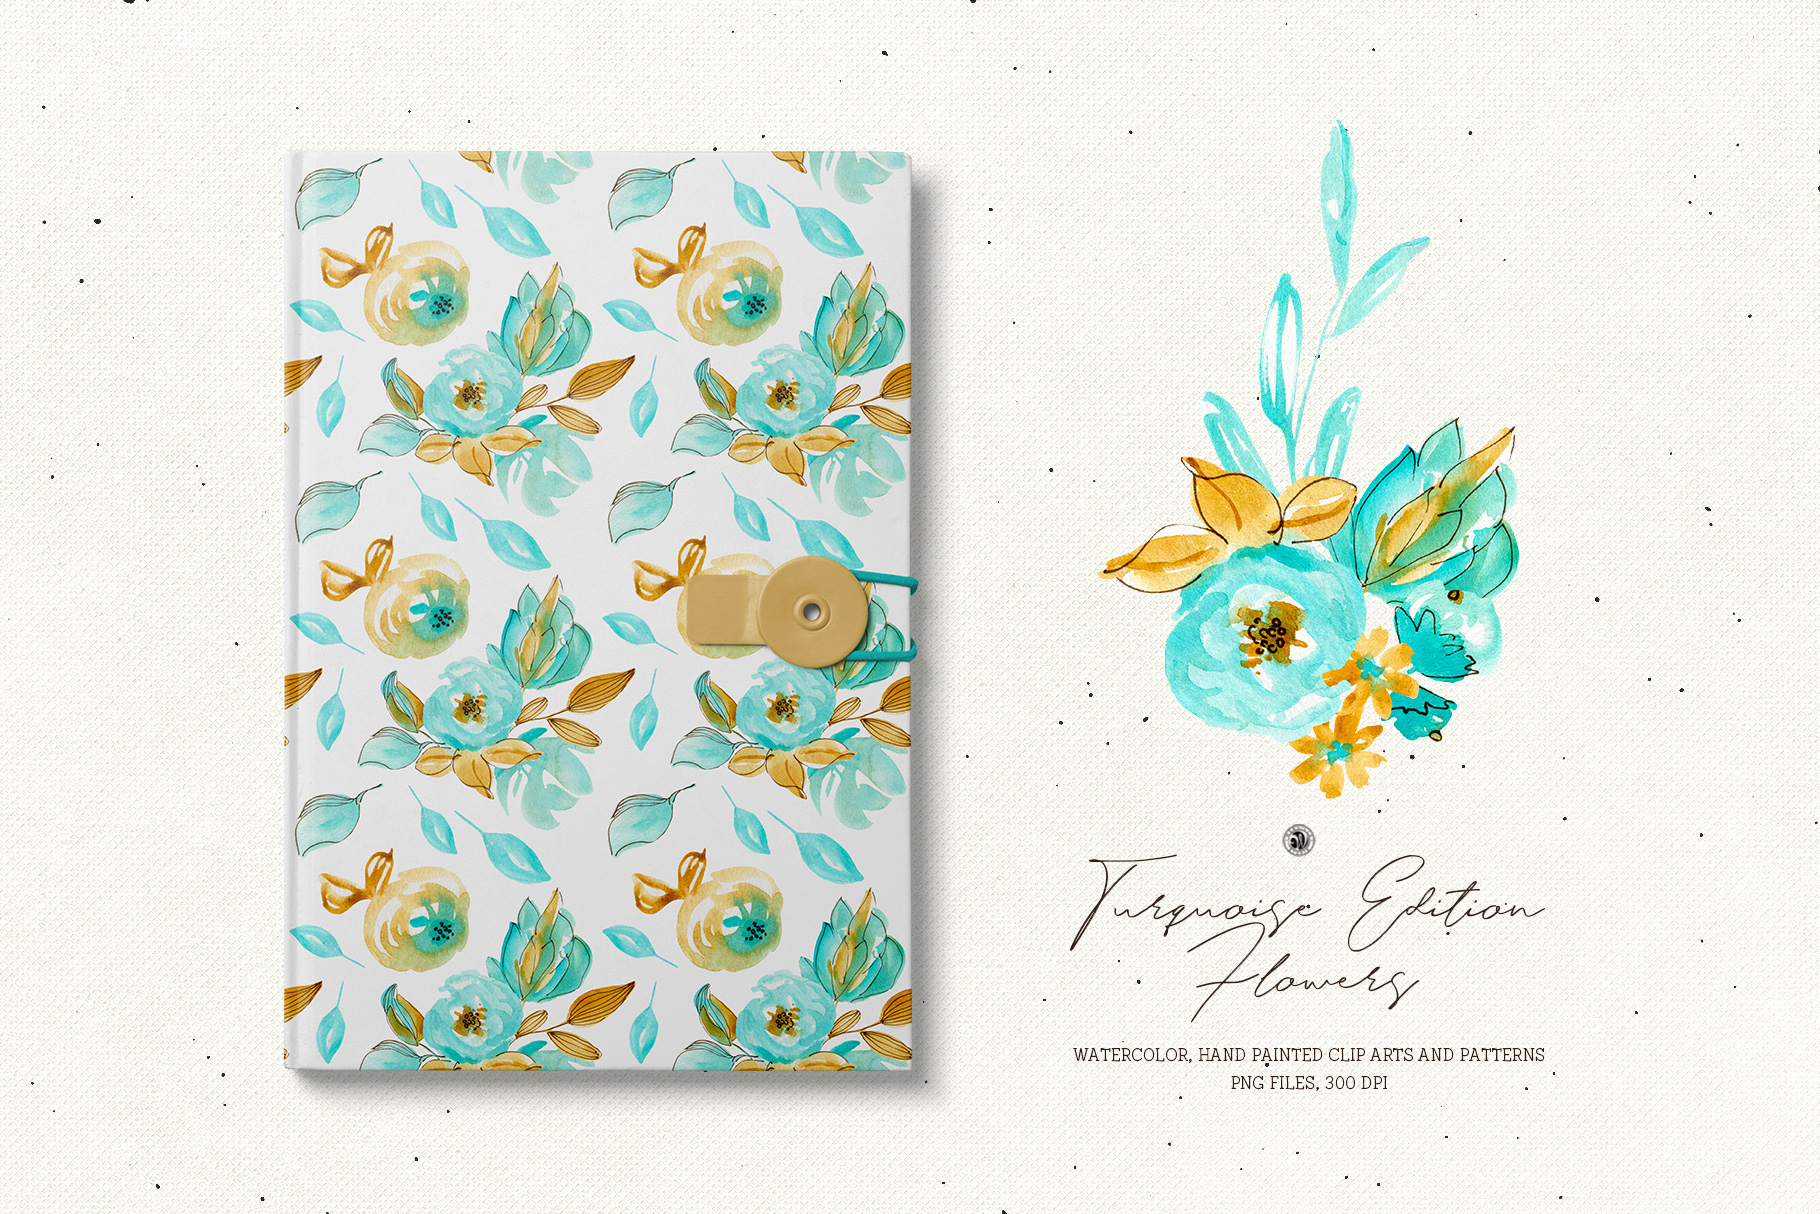 Turquoise Edition Flowers example image 2